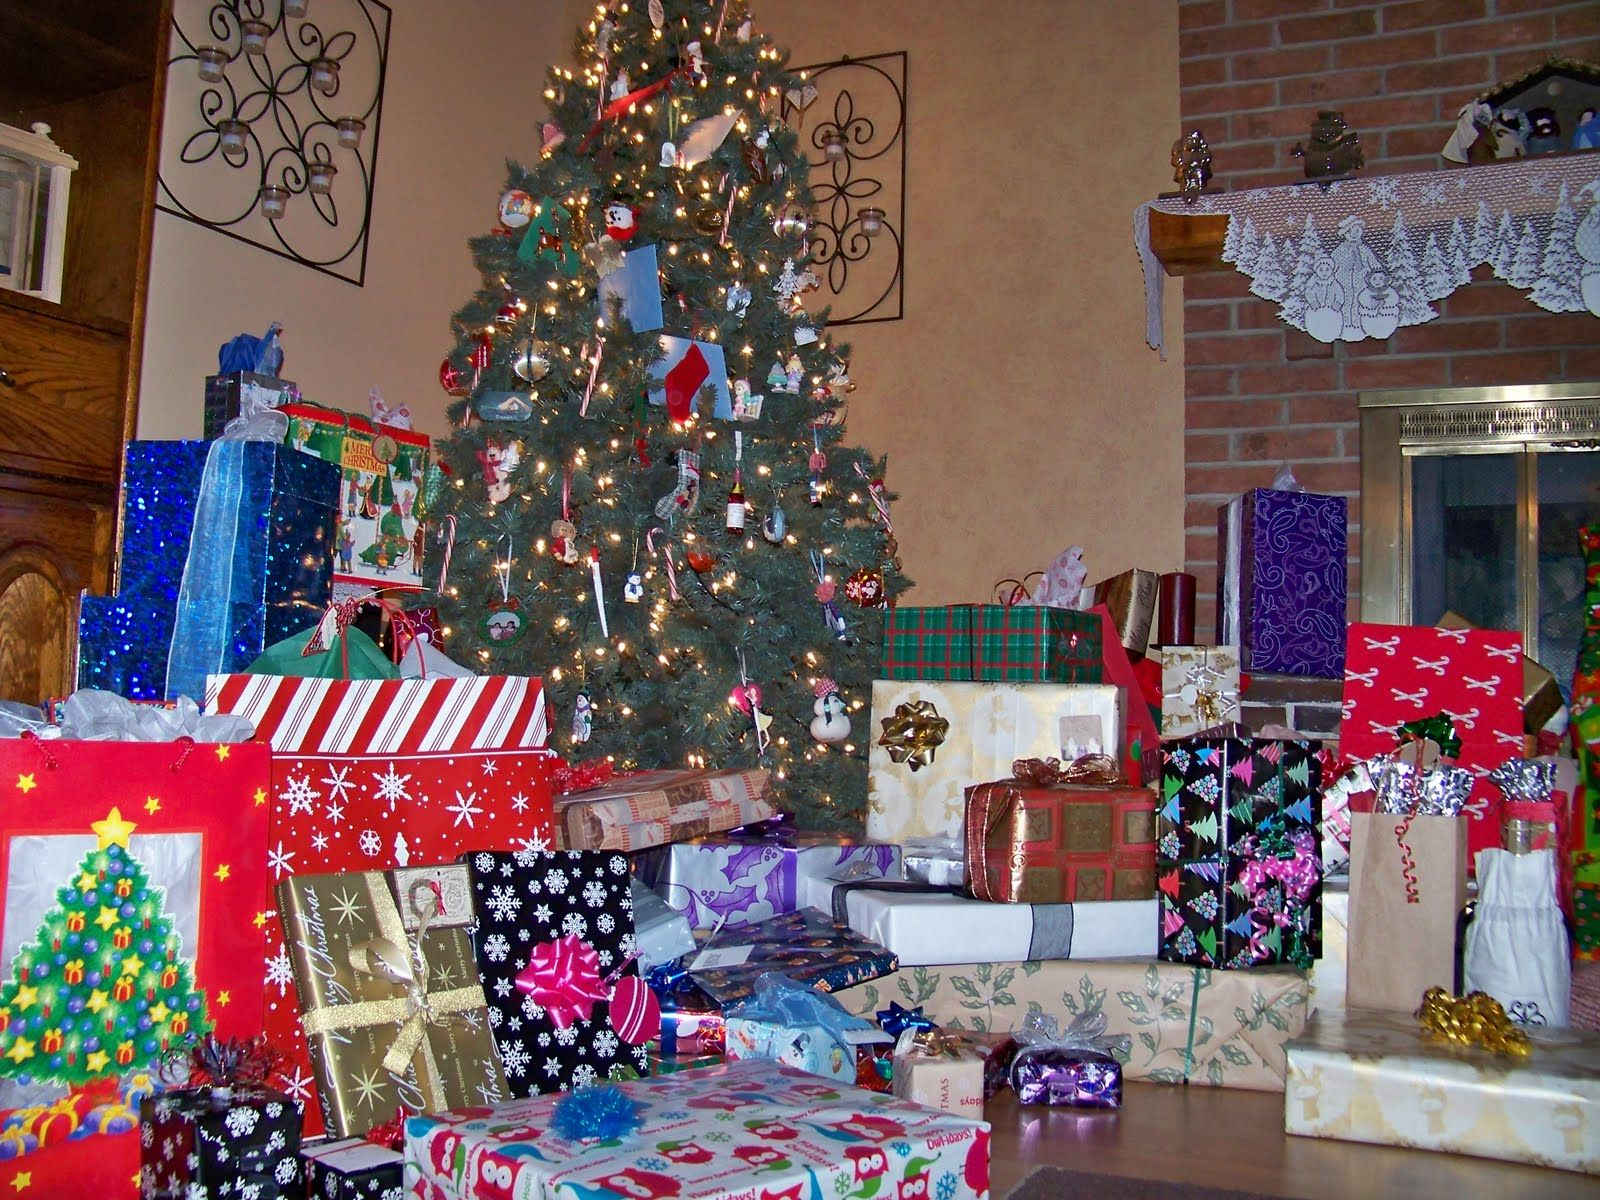 Real christmas trees with presents - Lots Of Christmas Presents Lots Of Presents